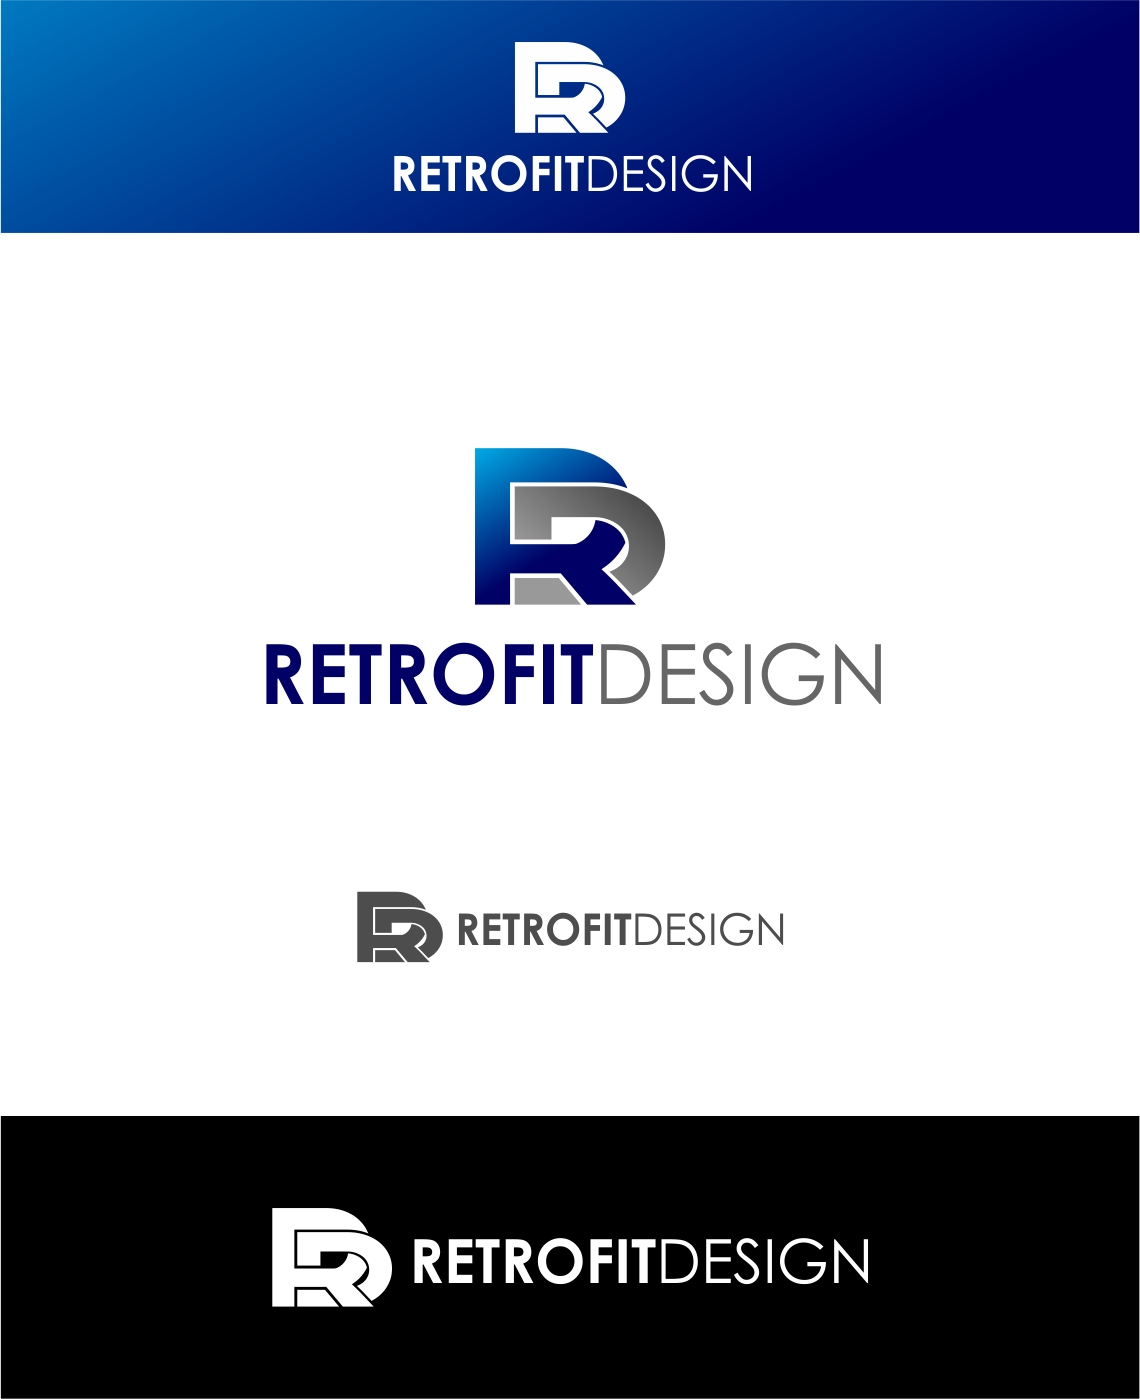 Logo Design by haidu - Entry No. 157 in the Logo Design Contest Inspiring Logo Design for retrofit design.